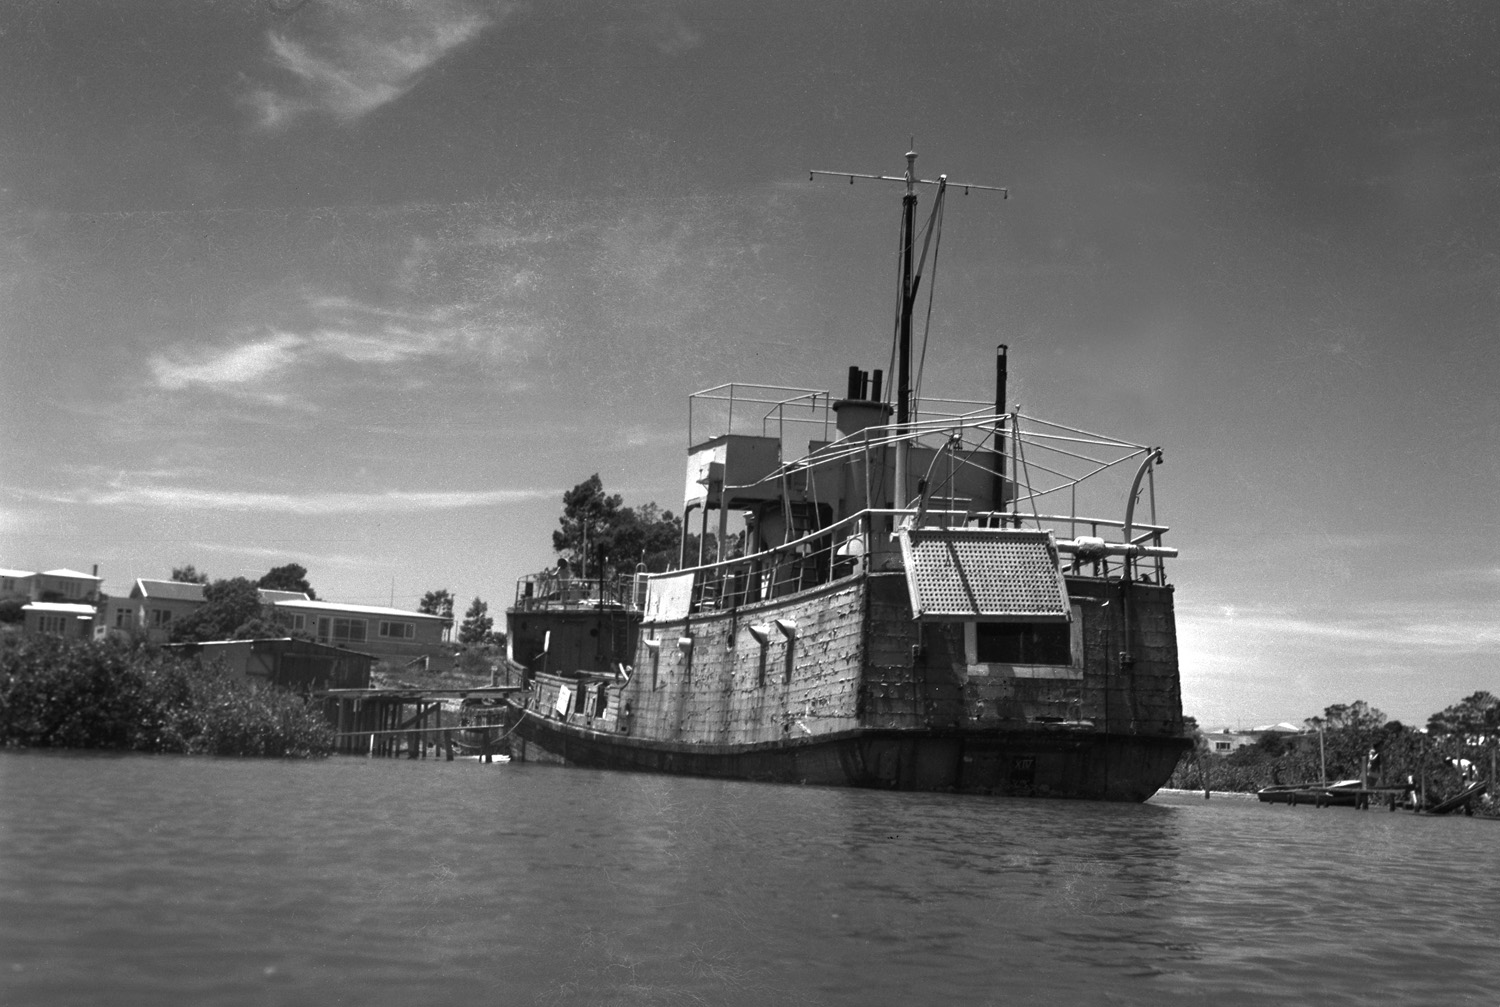 Isa lei, abandoned in the mangroves at the bottom of Wharf Road, and subsequently providing salvage materials for some, a residence for others and a playground for local kids like Gary de Forest, as related in Katy & Kula and the Kervil Kids (2011). Photographer: Jack Diamond, 1962. Auckland Libraries West Auckland Research Centre, J.T. Diamond Collection. (JTD-17M-01856-1)